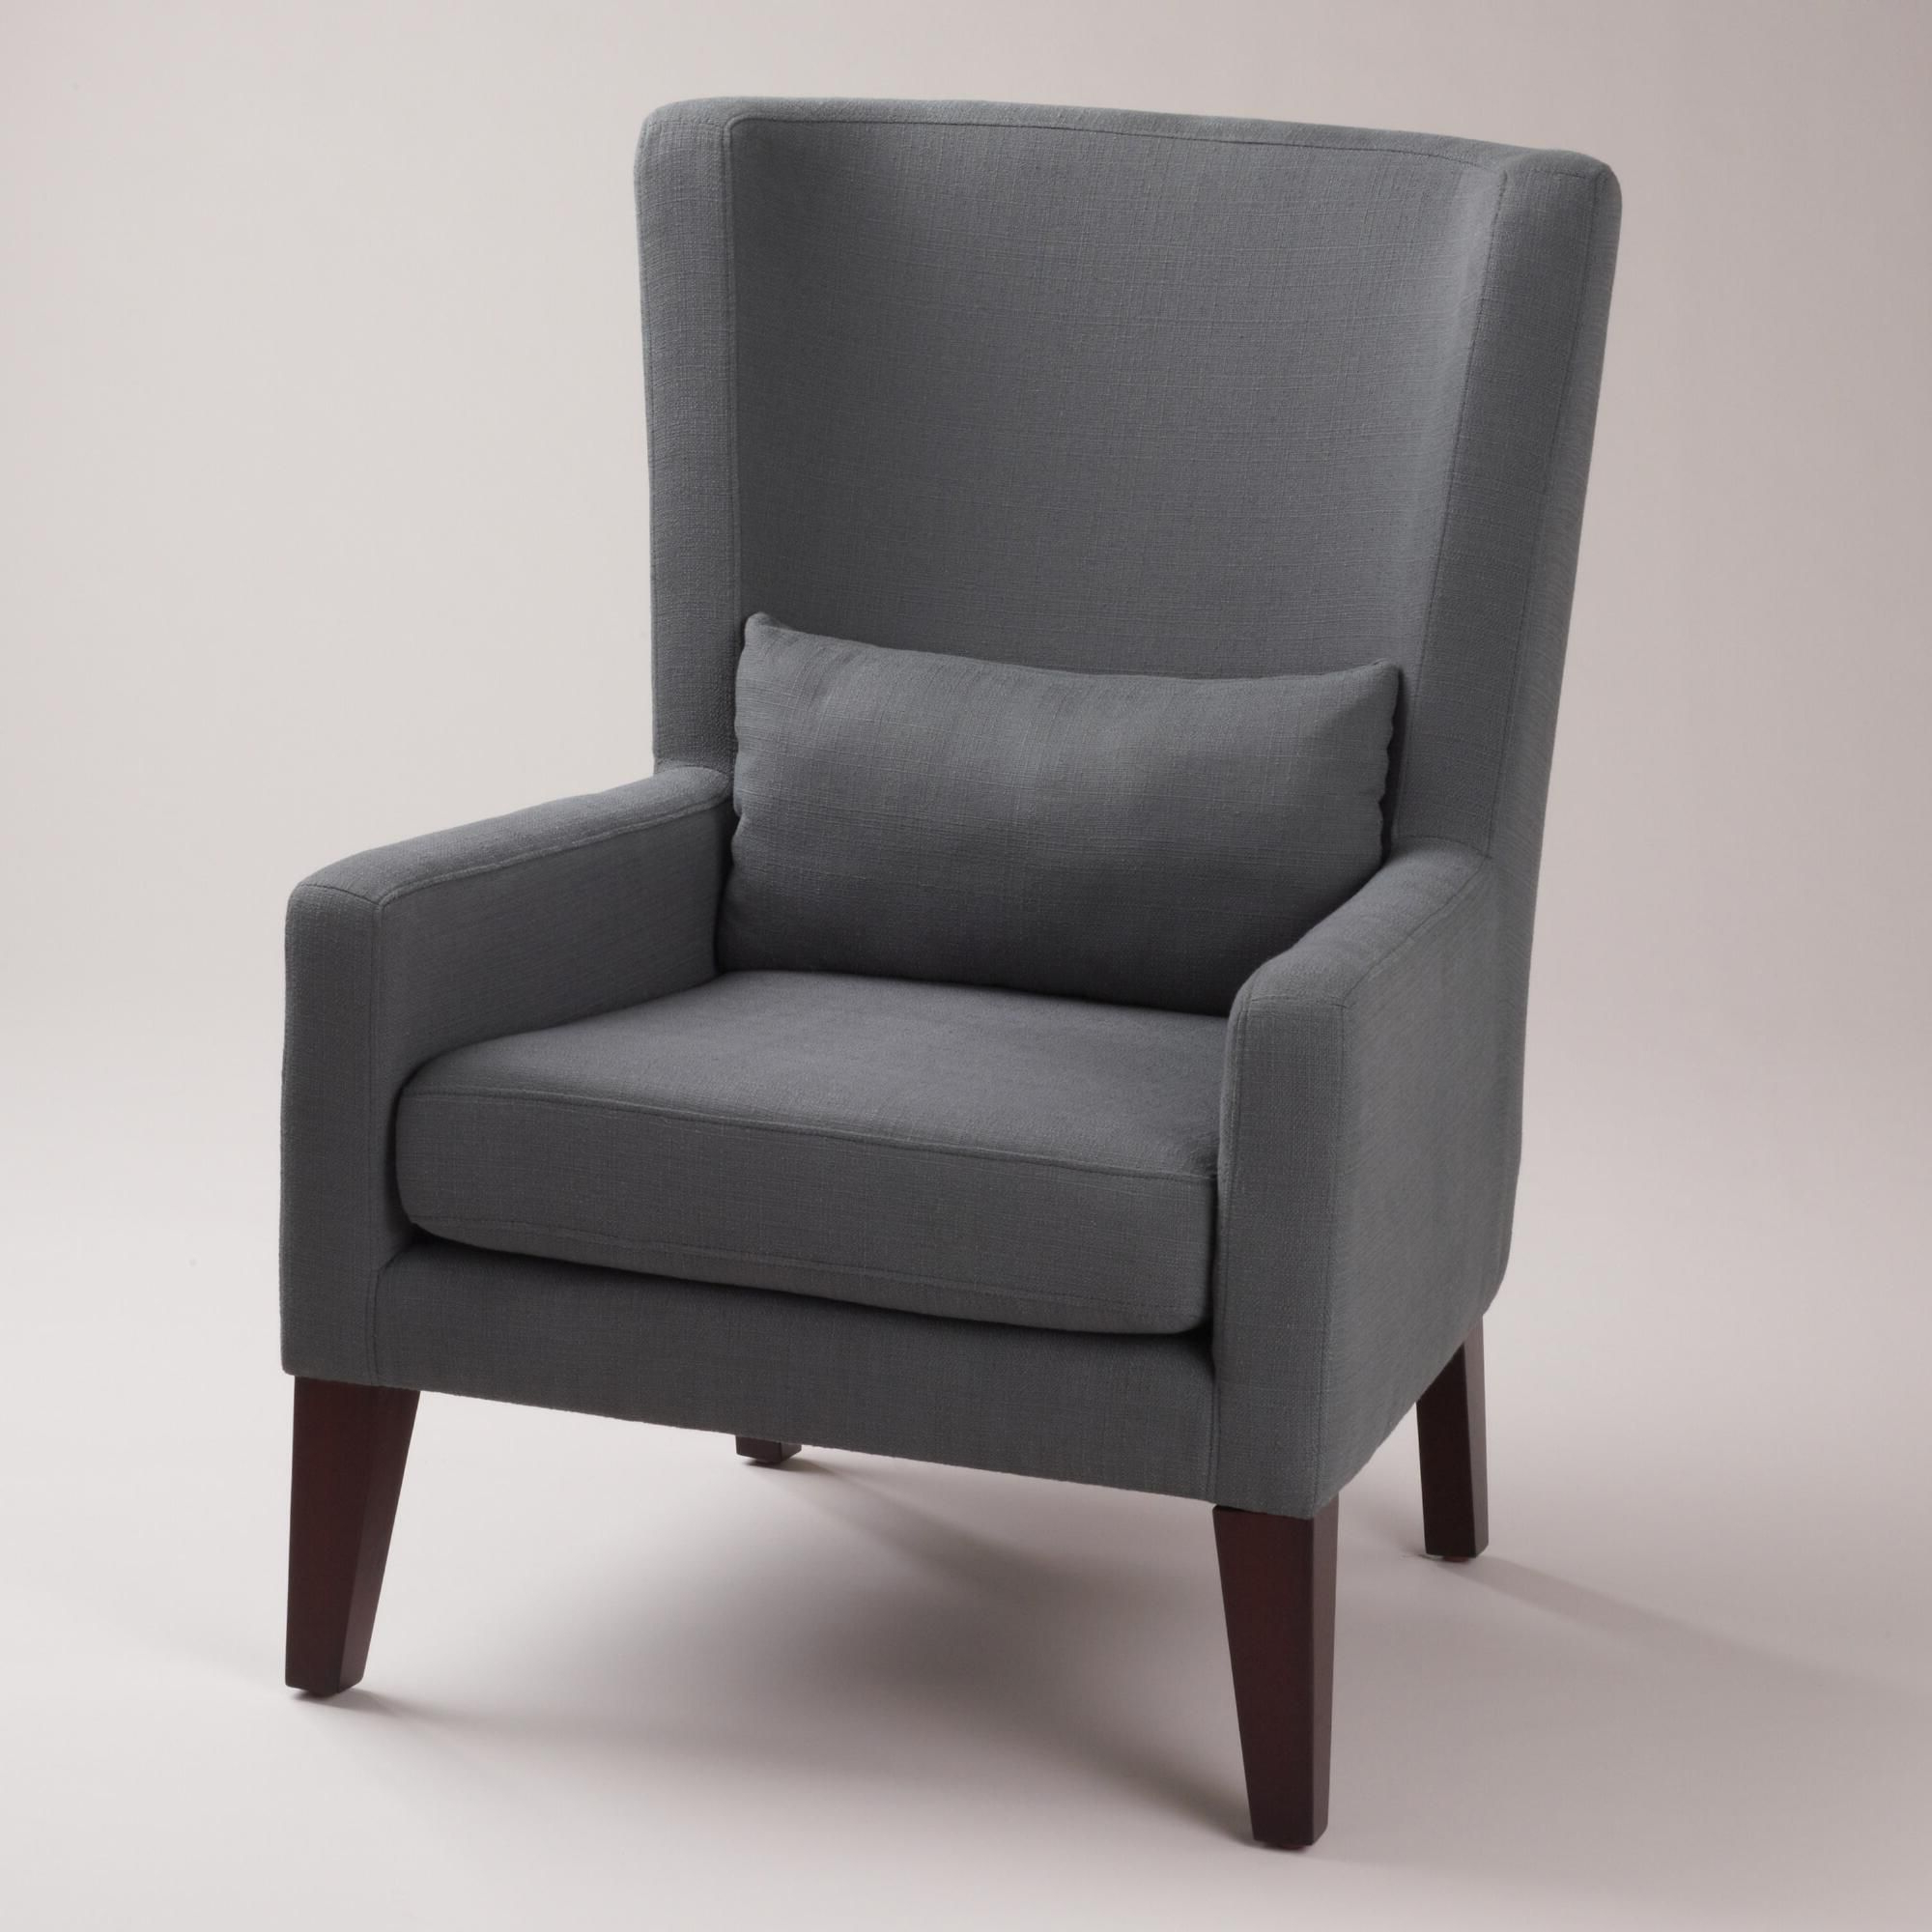 High Back Chairs, Living Pertaining To Allis Tufted Polyester Blend Wingback Chairs (View 6 of 20)